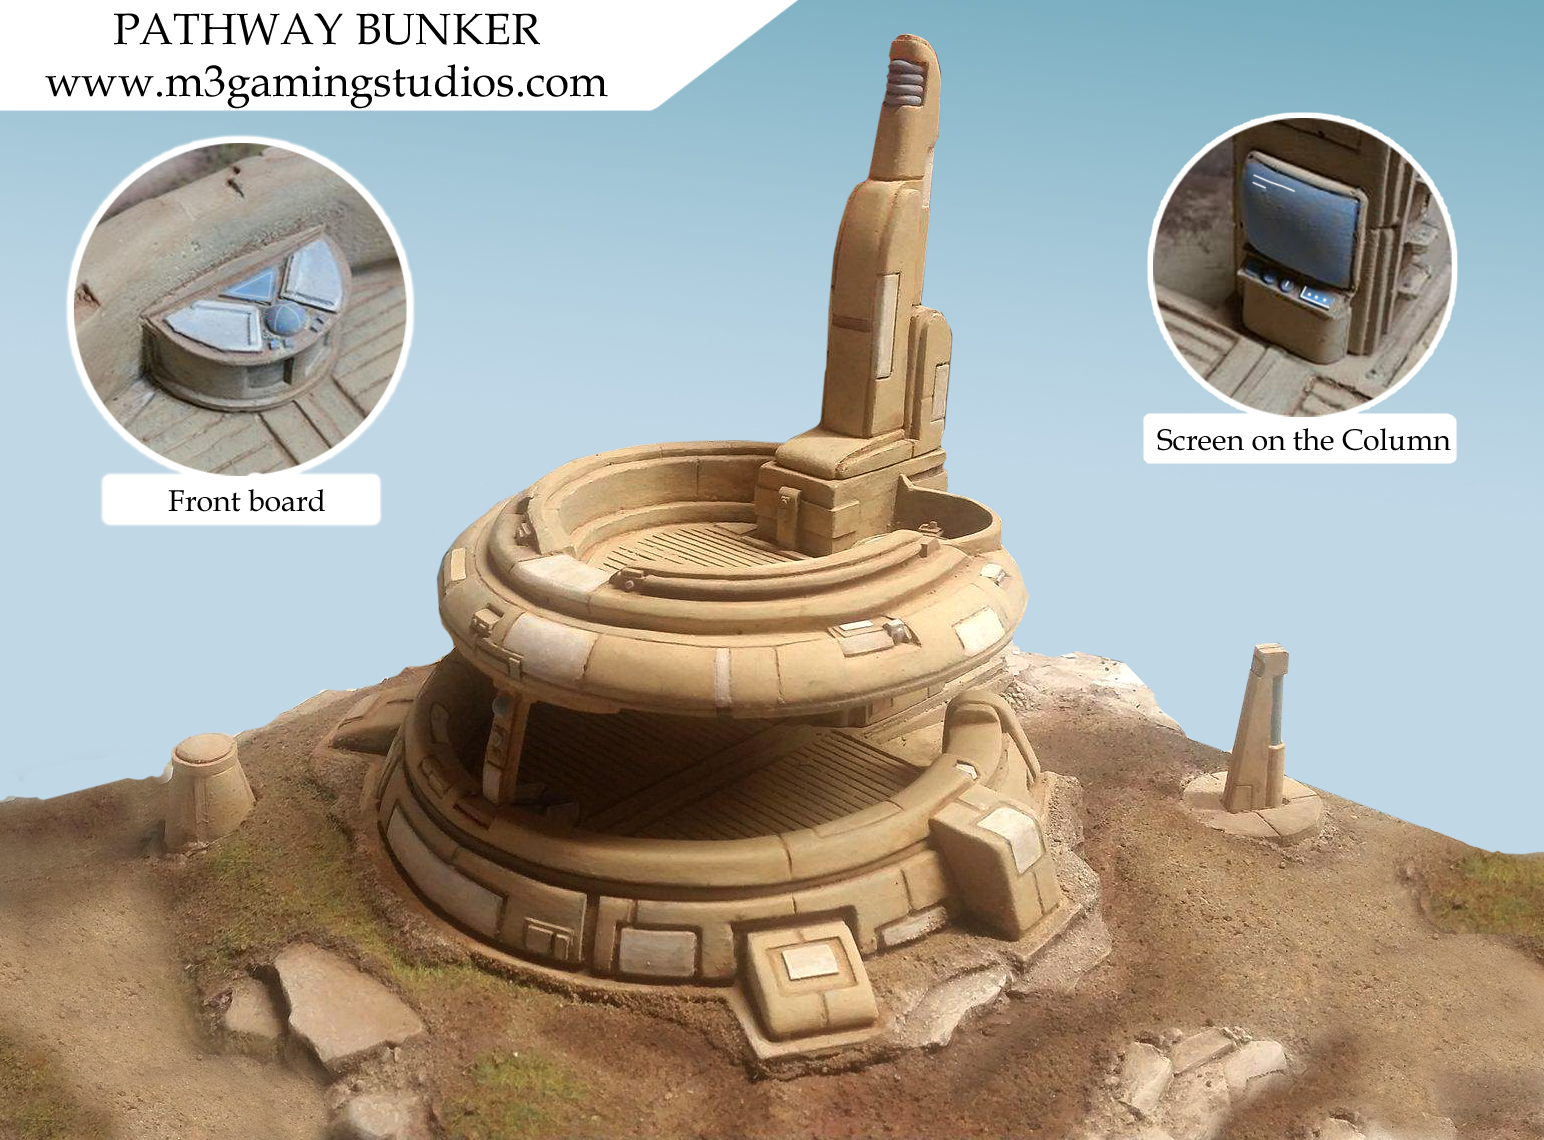 The Pathway Bunker 2